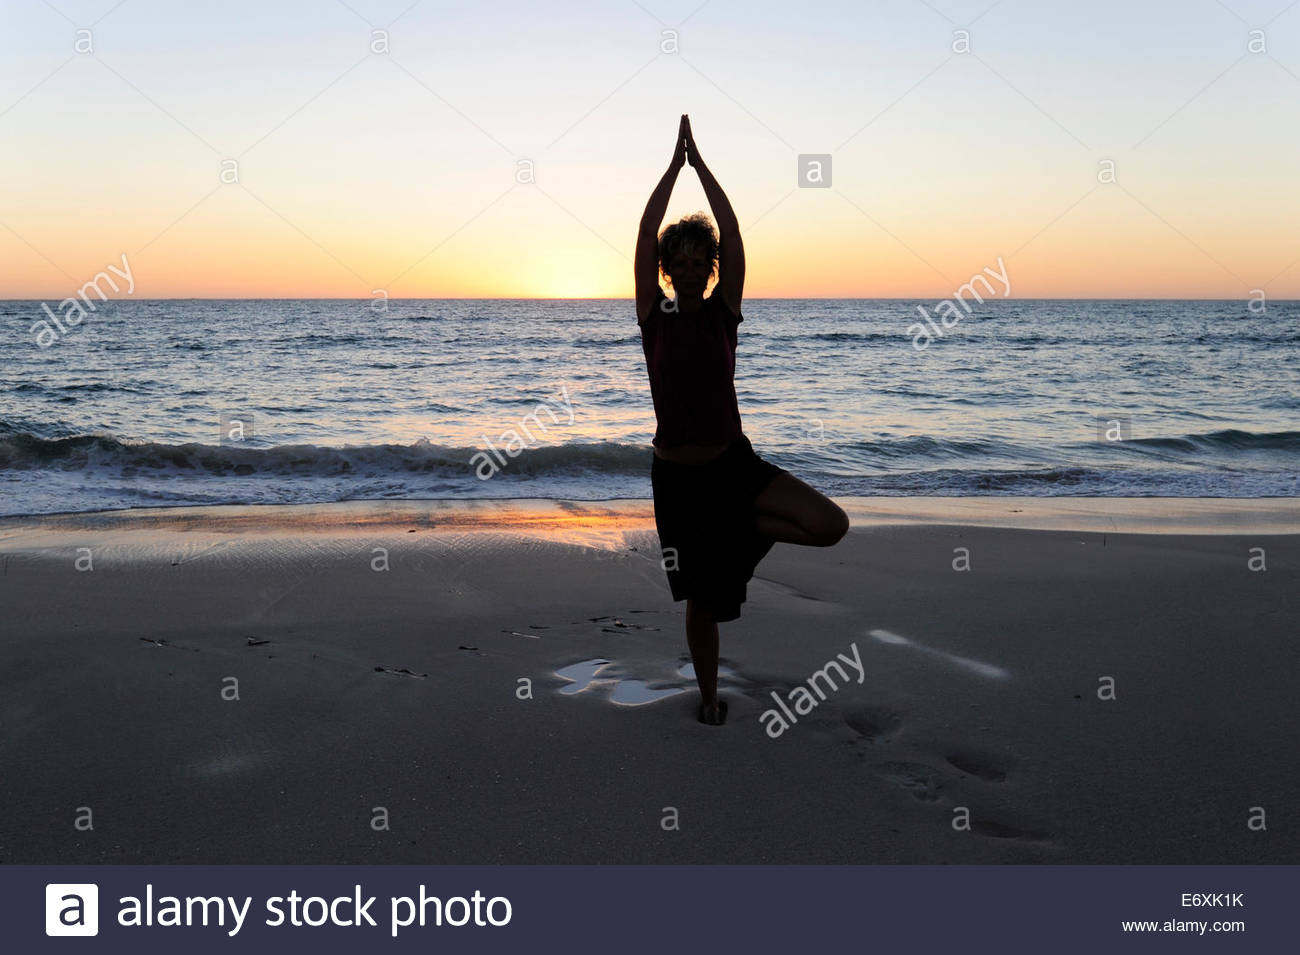 Yoga position, woman showing asana on the beach near Cervantes, Perth, Western Australia, WA, Indian Ocean, Australia - Stock Image